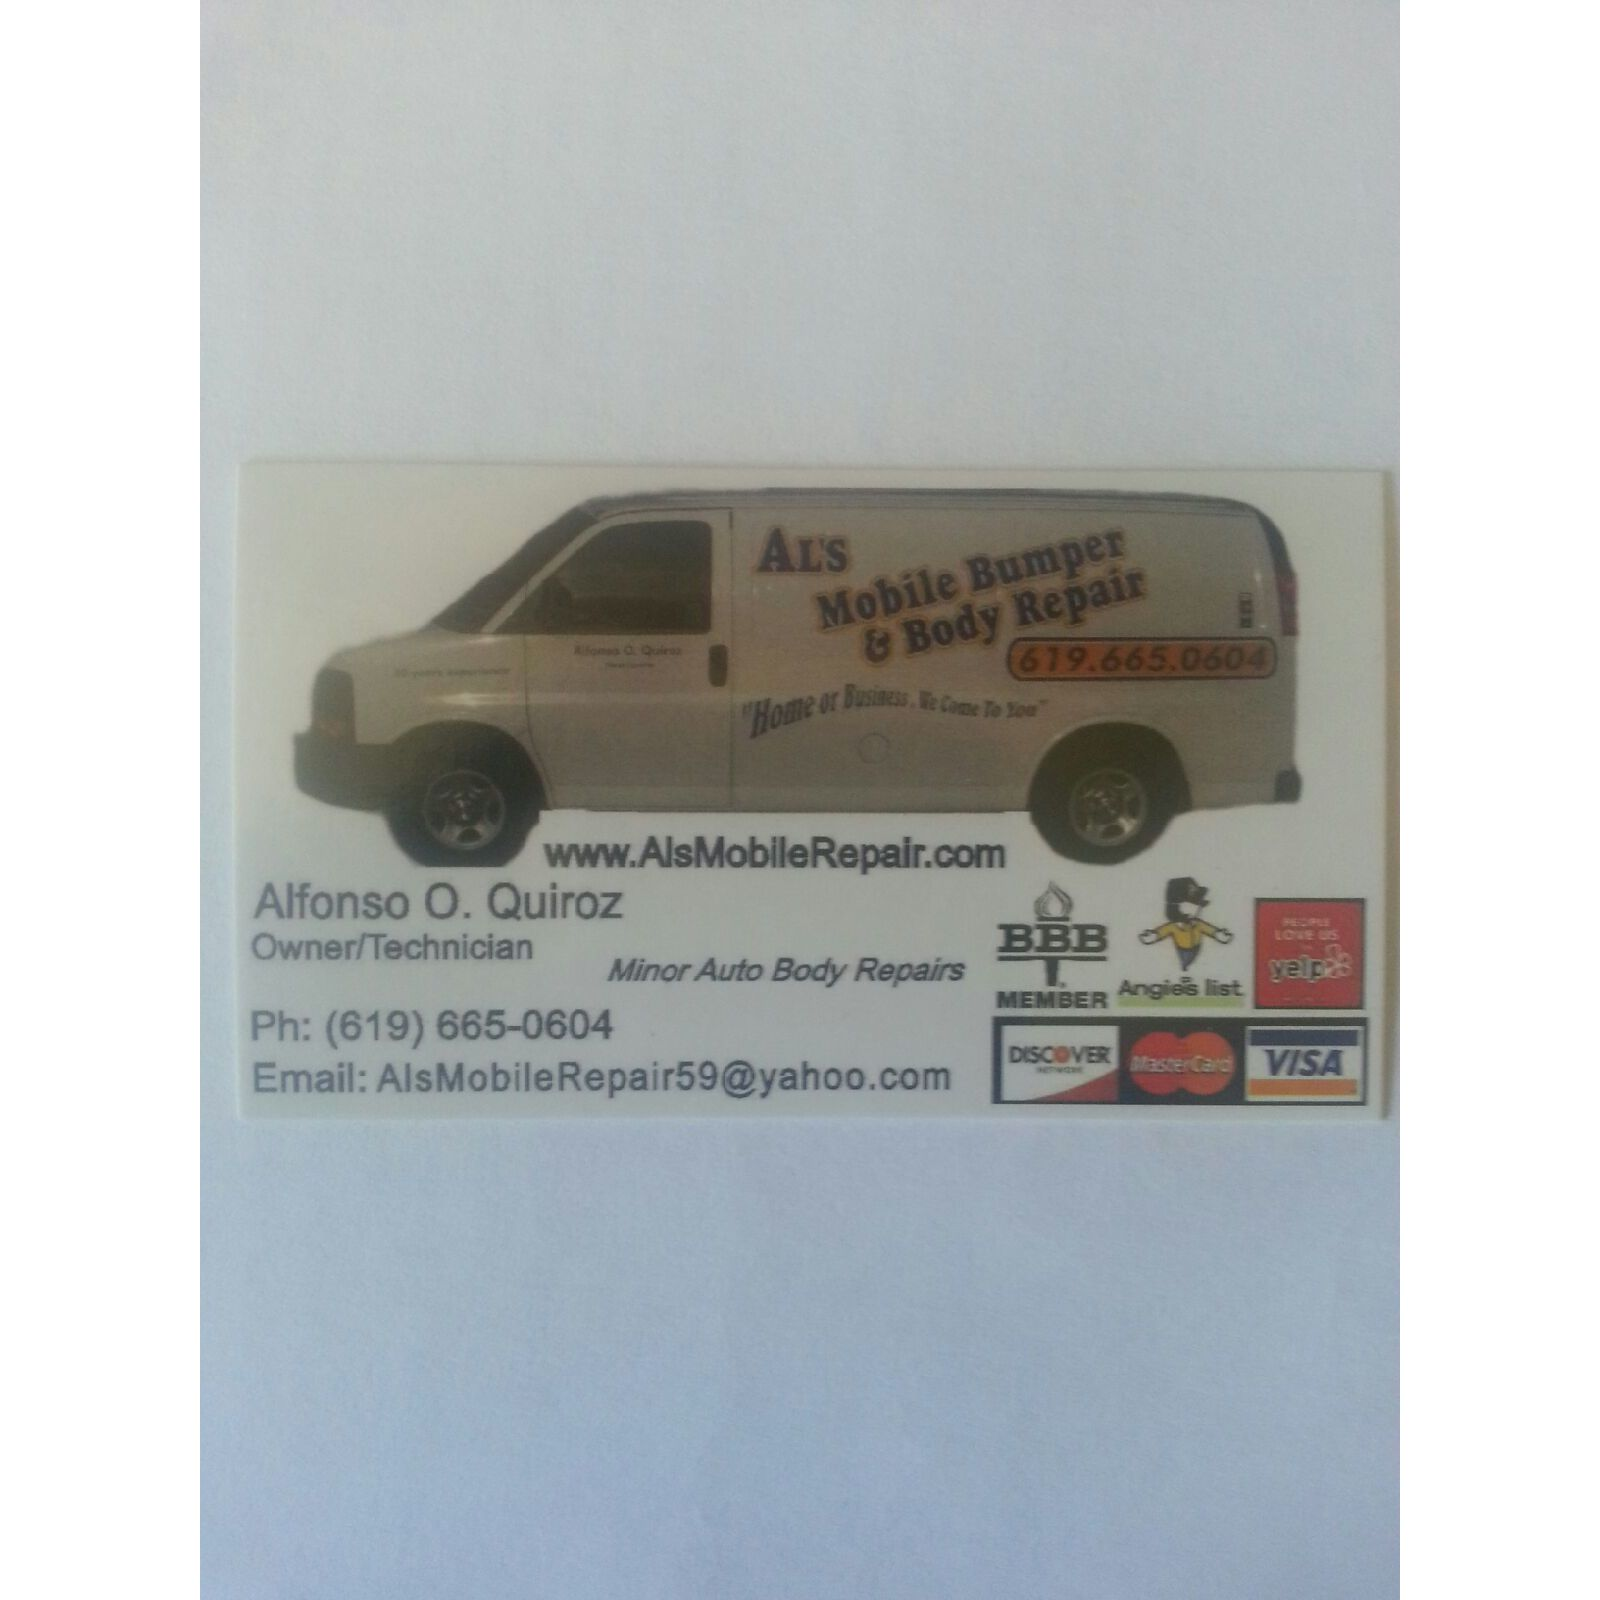 Al's Mobile Bumper & Body Repair